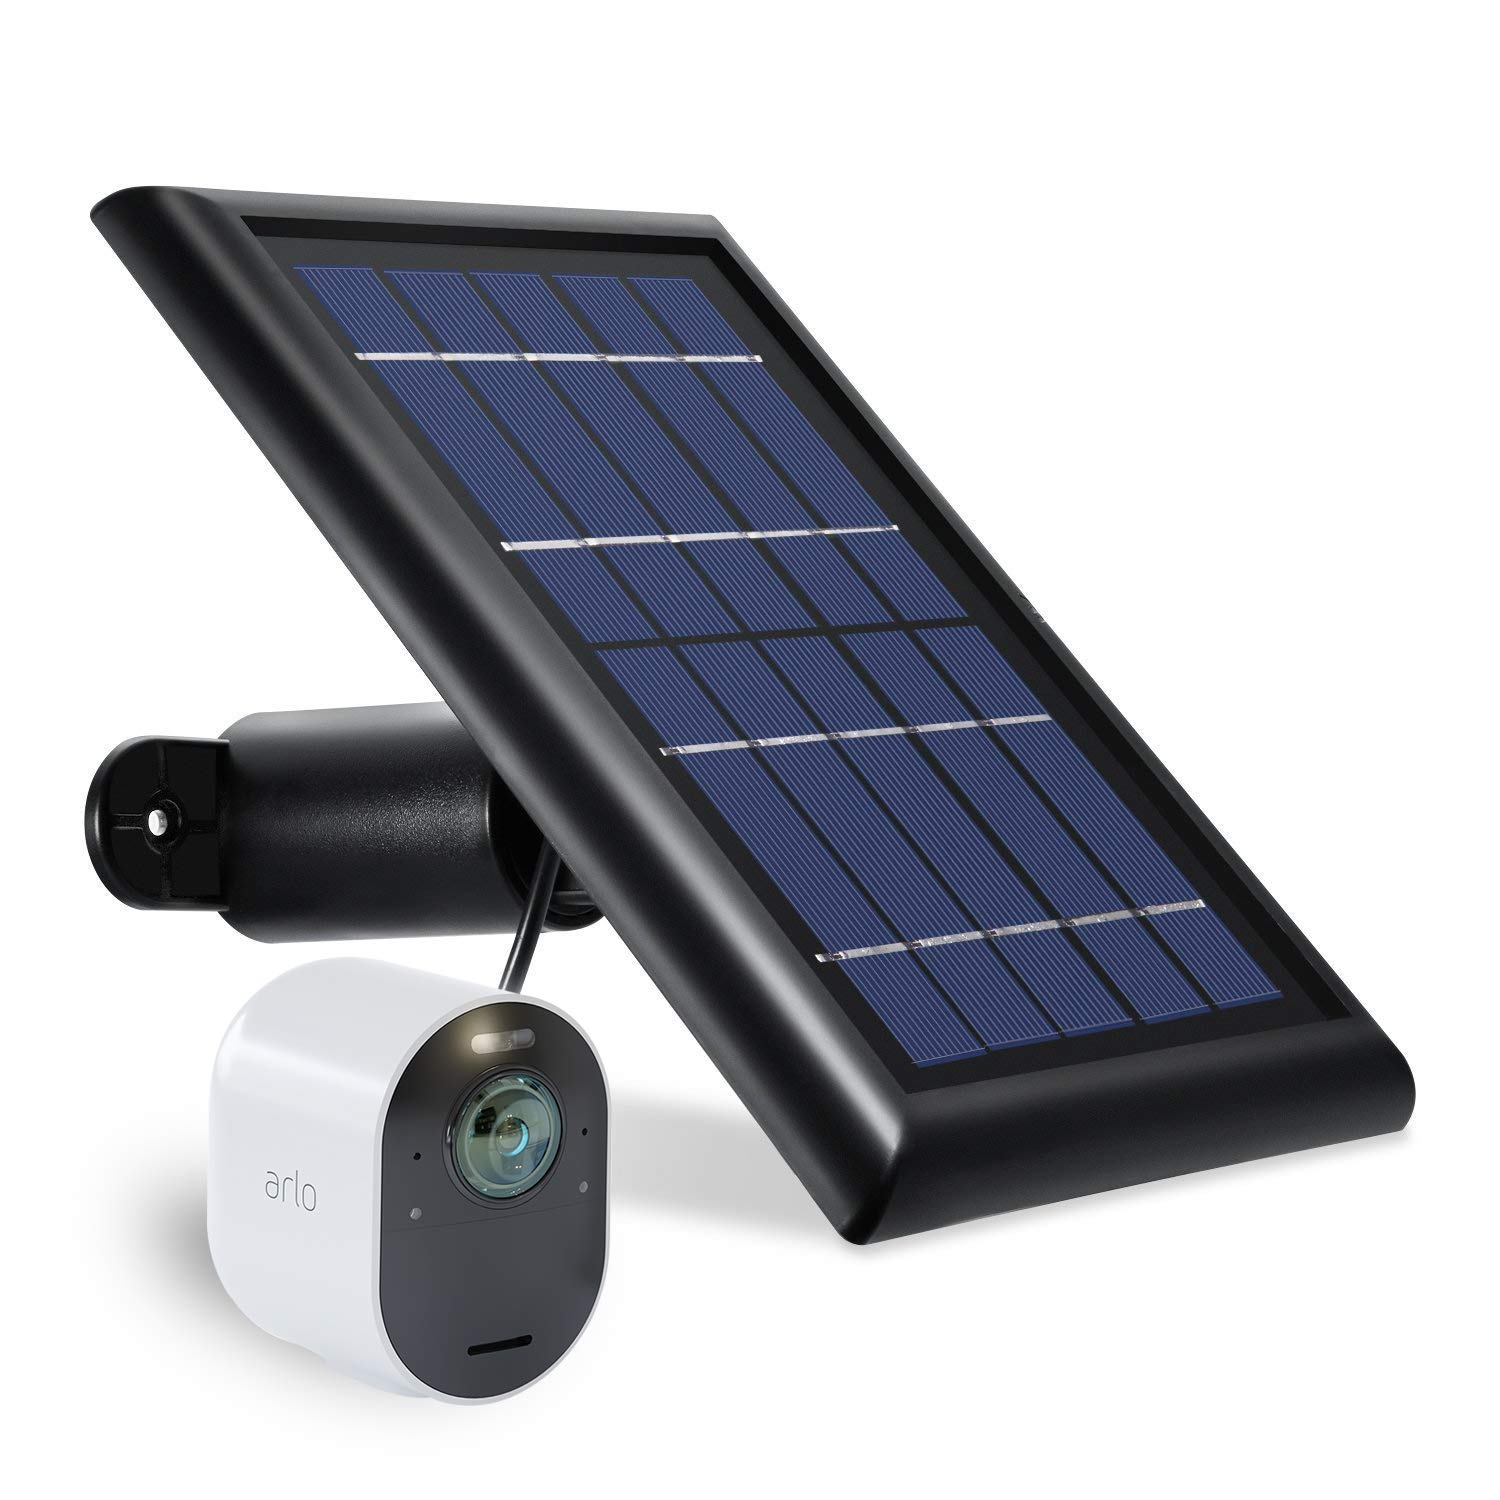 Solar Panel with 13.1ft/4m Cable Compatible with Arlo Ultra - Power Your Arlo Surveillance Camera continuously (Black) (Not Compatible with Arlo Pro) by Wasserstein